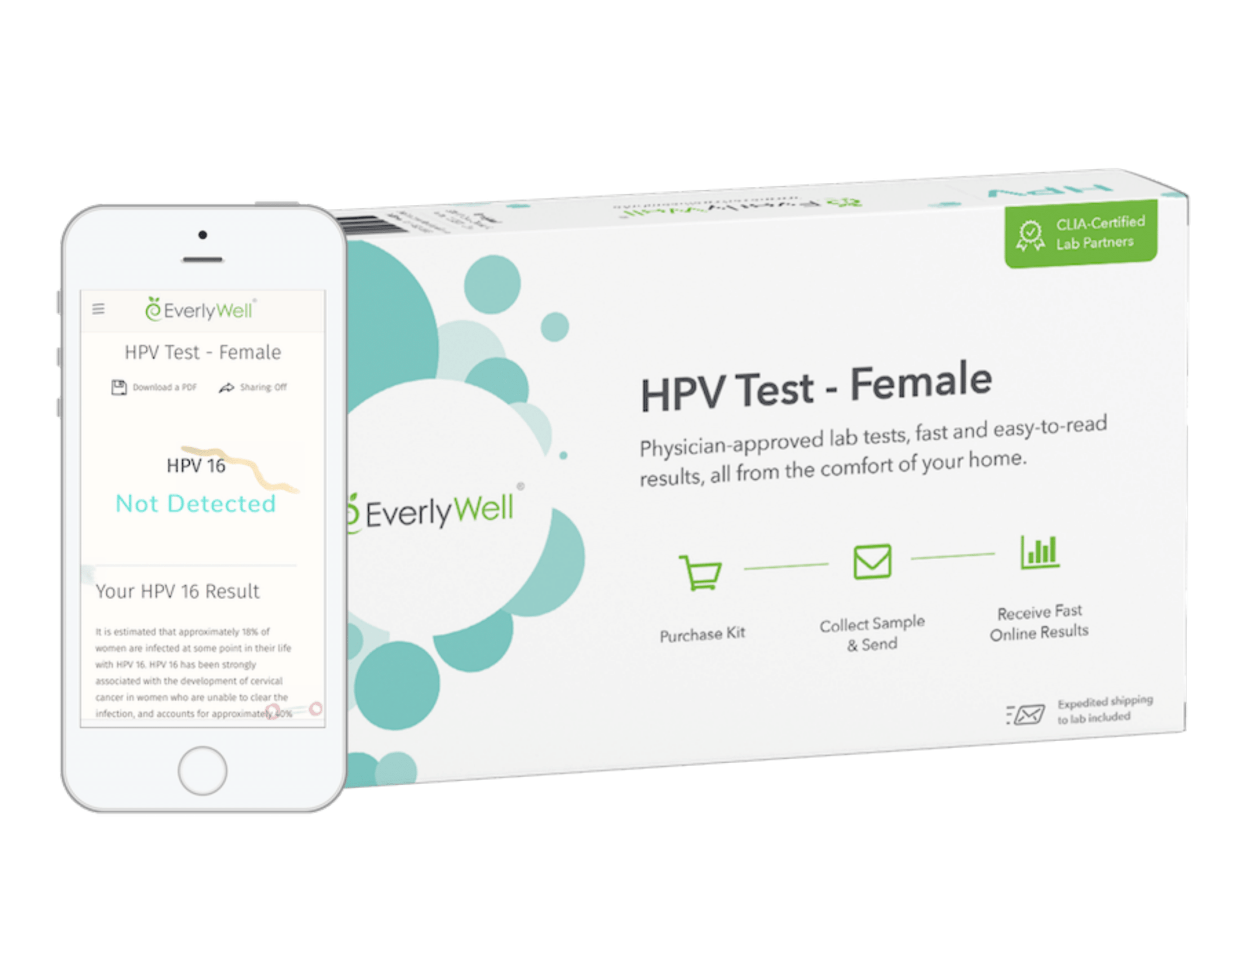 HPV-Device-Mockup-Phone-and-Box-1-1